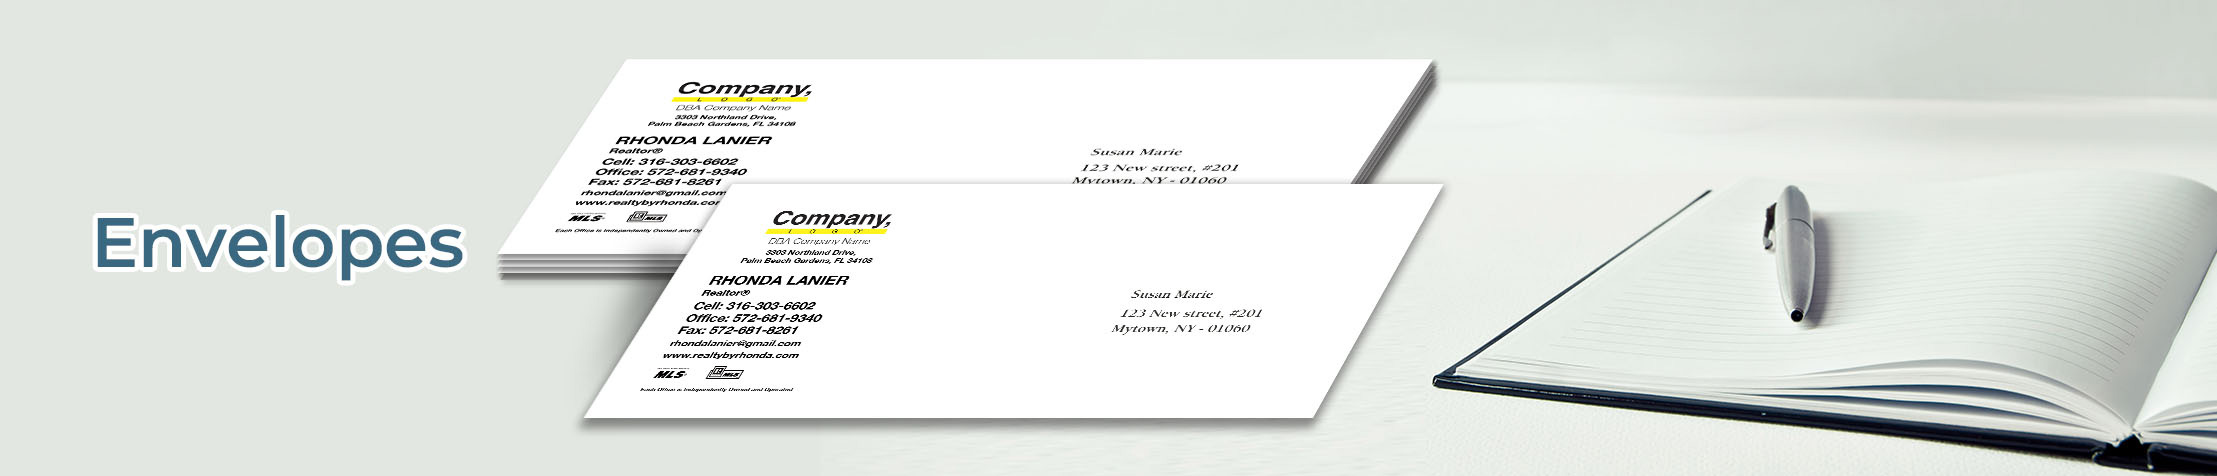 Weichert Real Estate #10 Envelopes - Weichert - Custom Stationery Templates for Weichert Offices and Real Estate Agents | BestPrintBuy.com